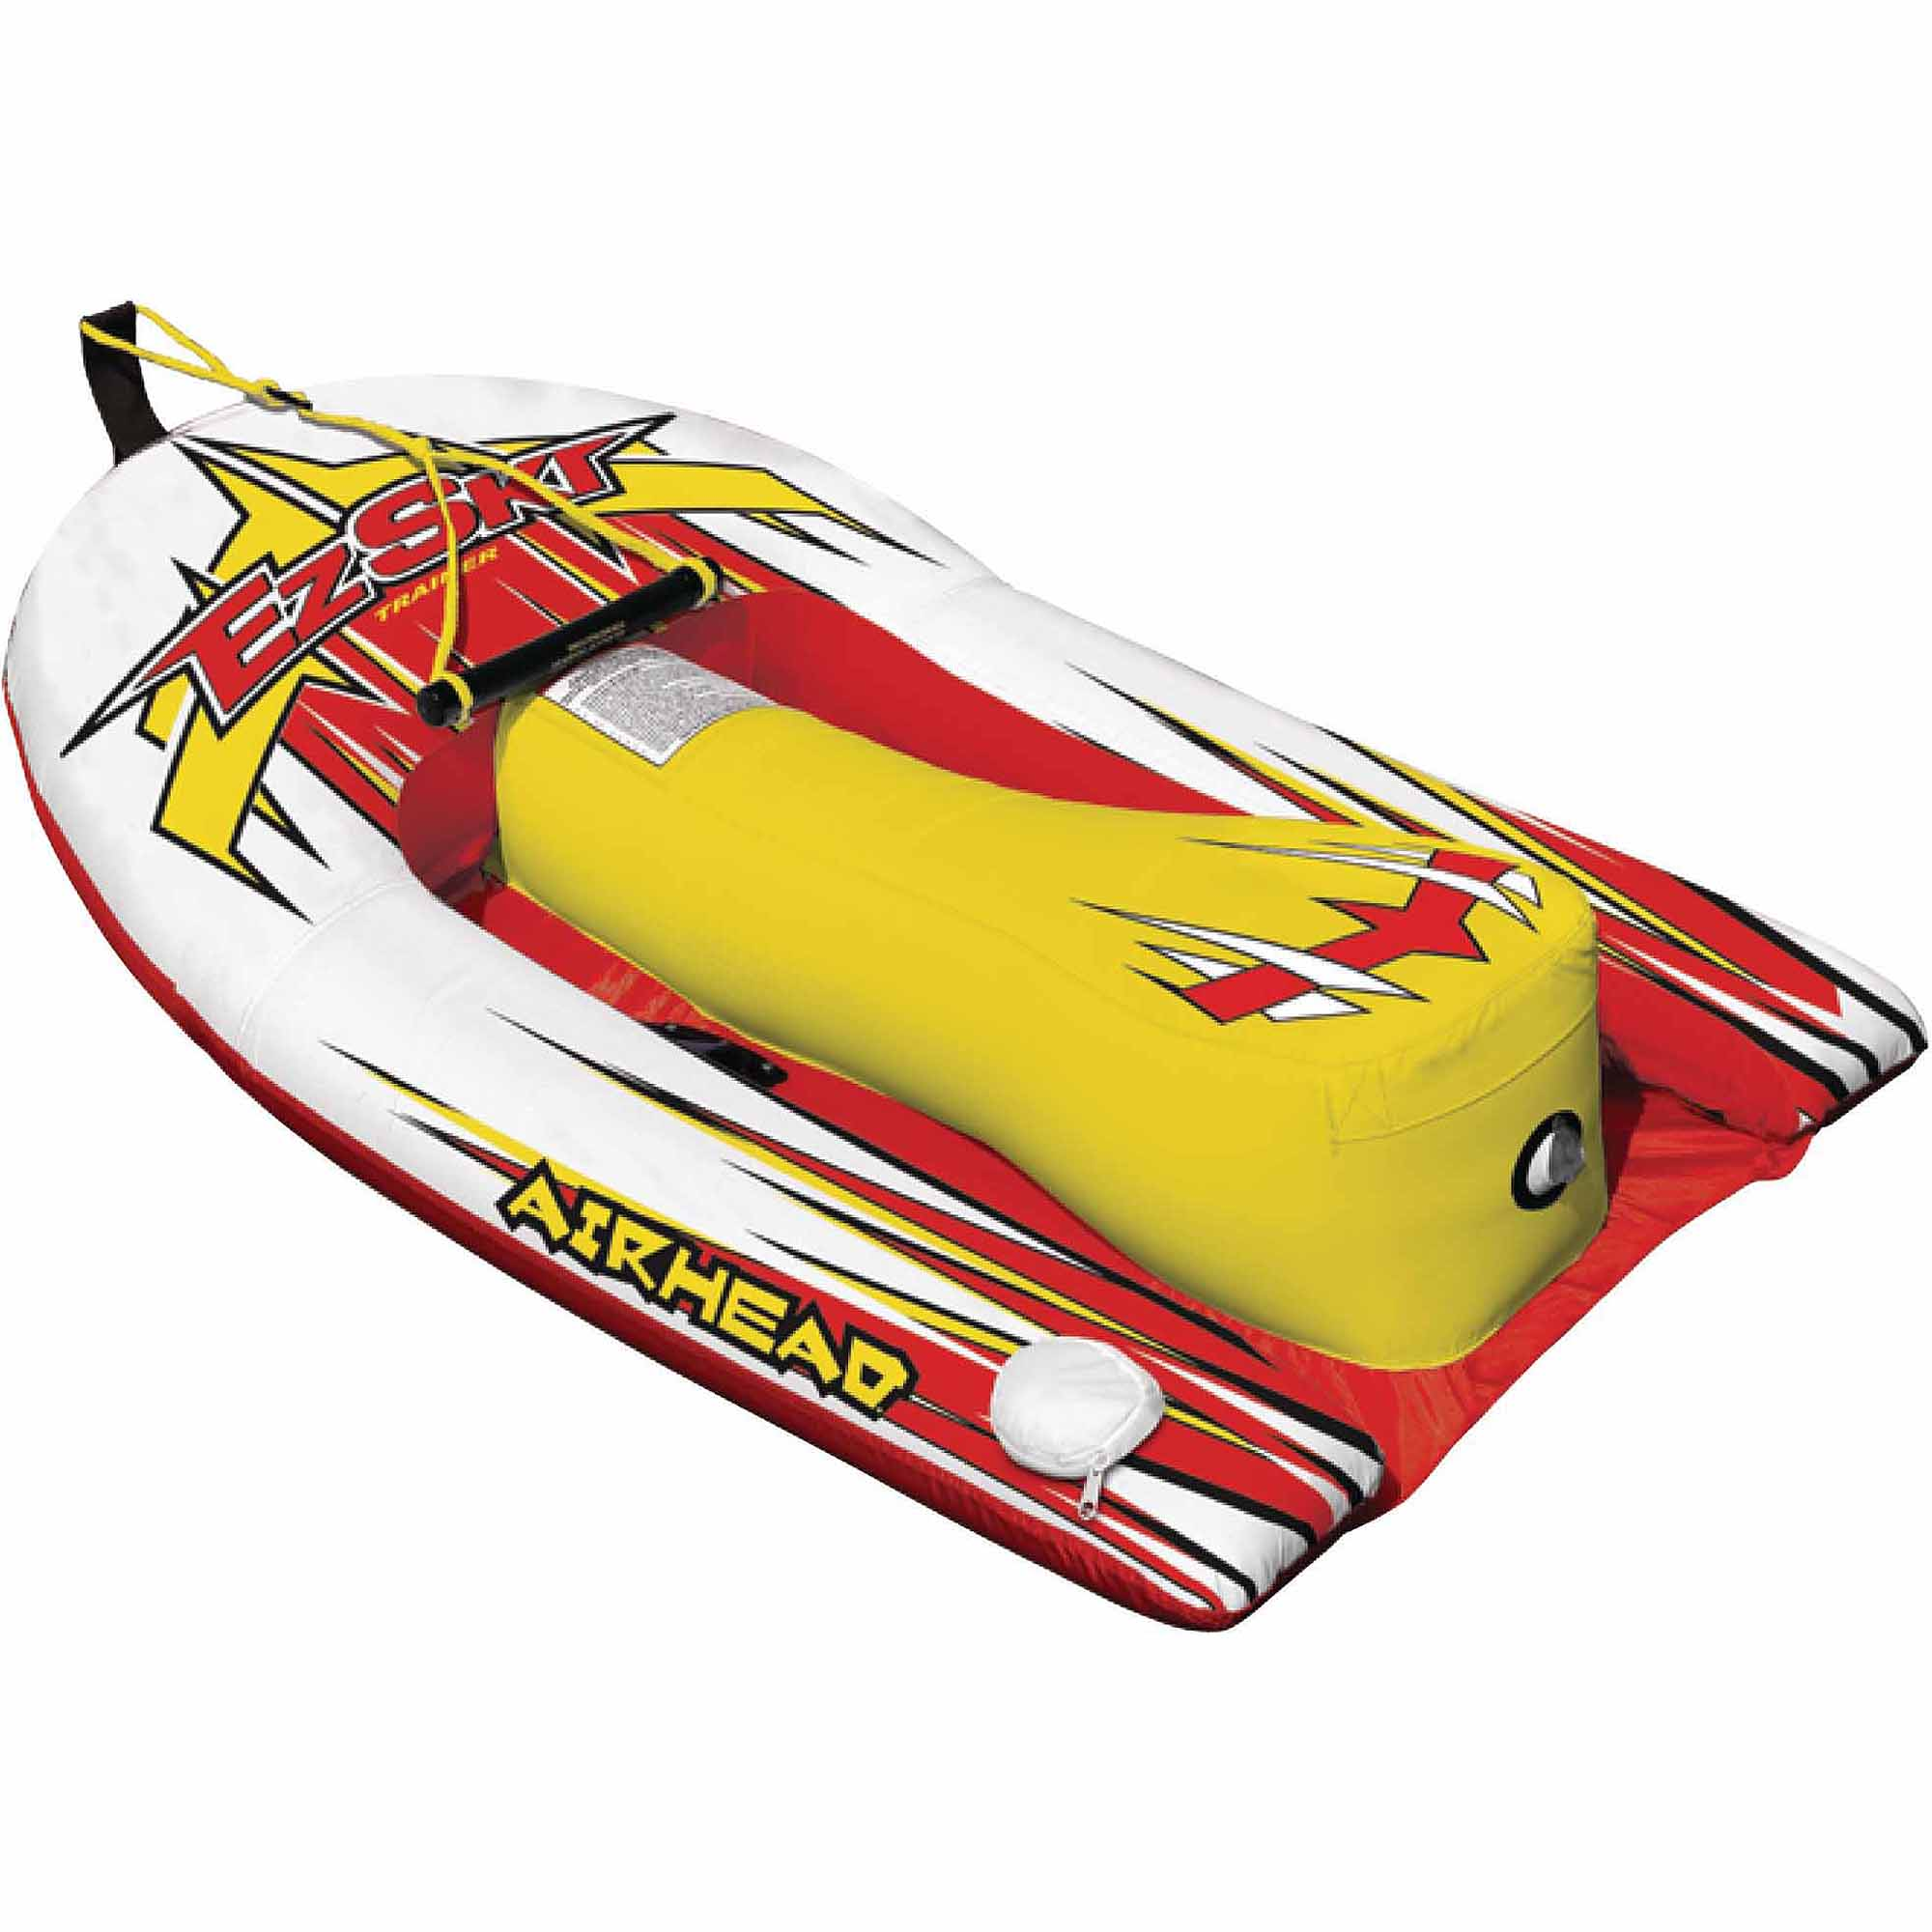 Airhead Big EZ Ski Inflatable Single Rider Towable Water Ski Hybrid by Kwik Tek